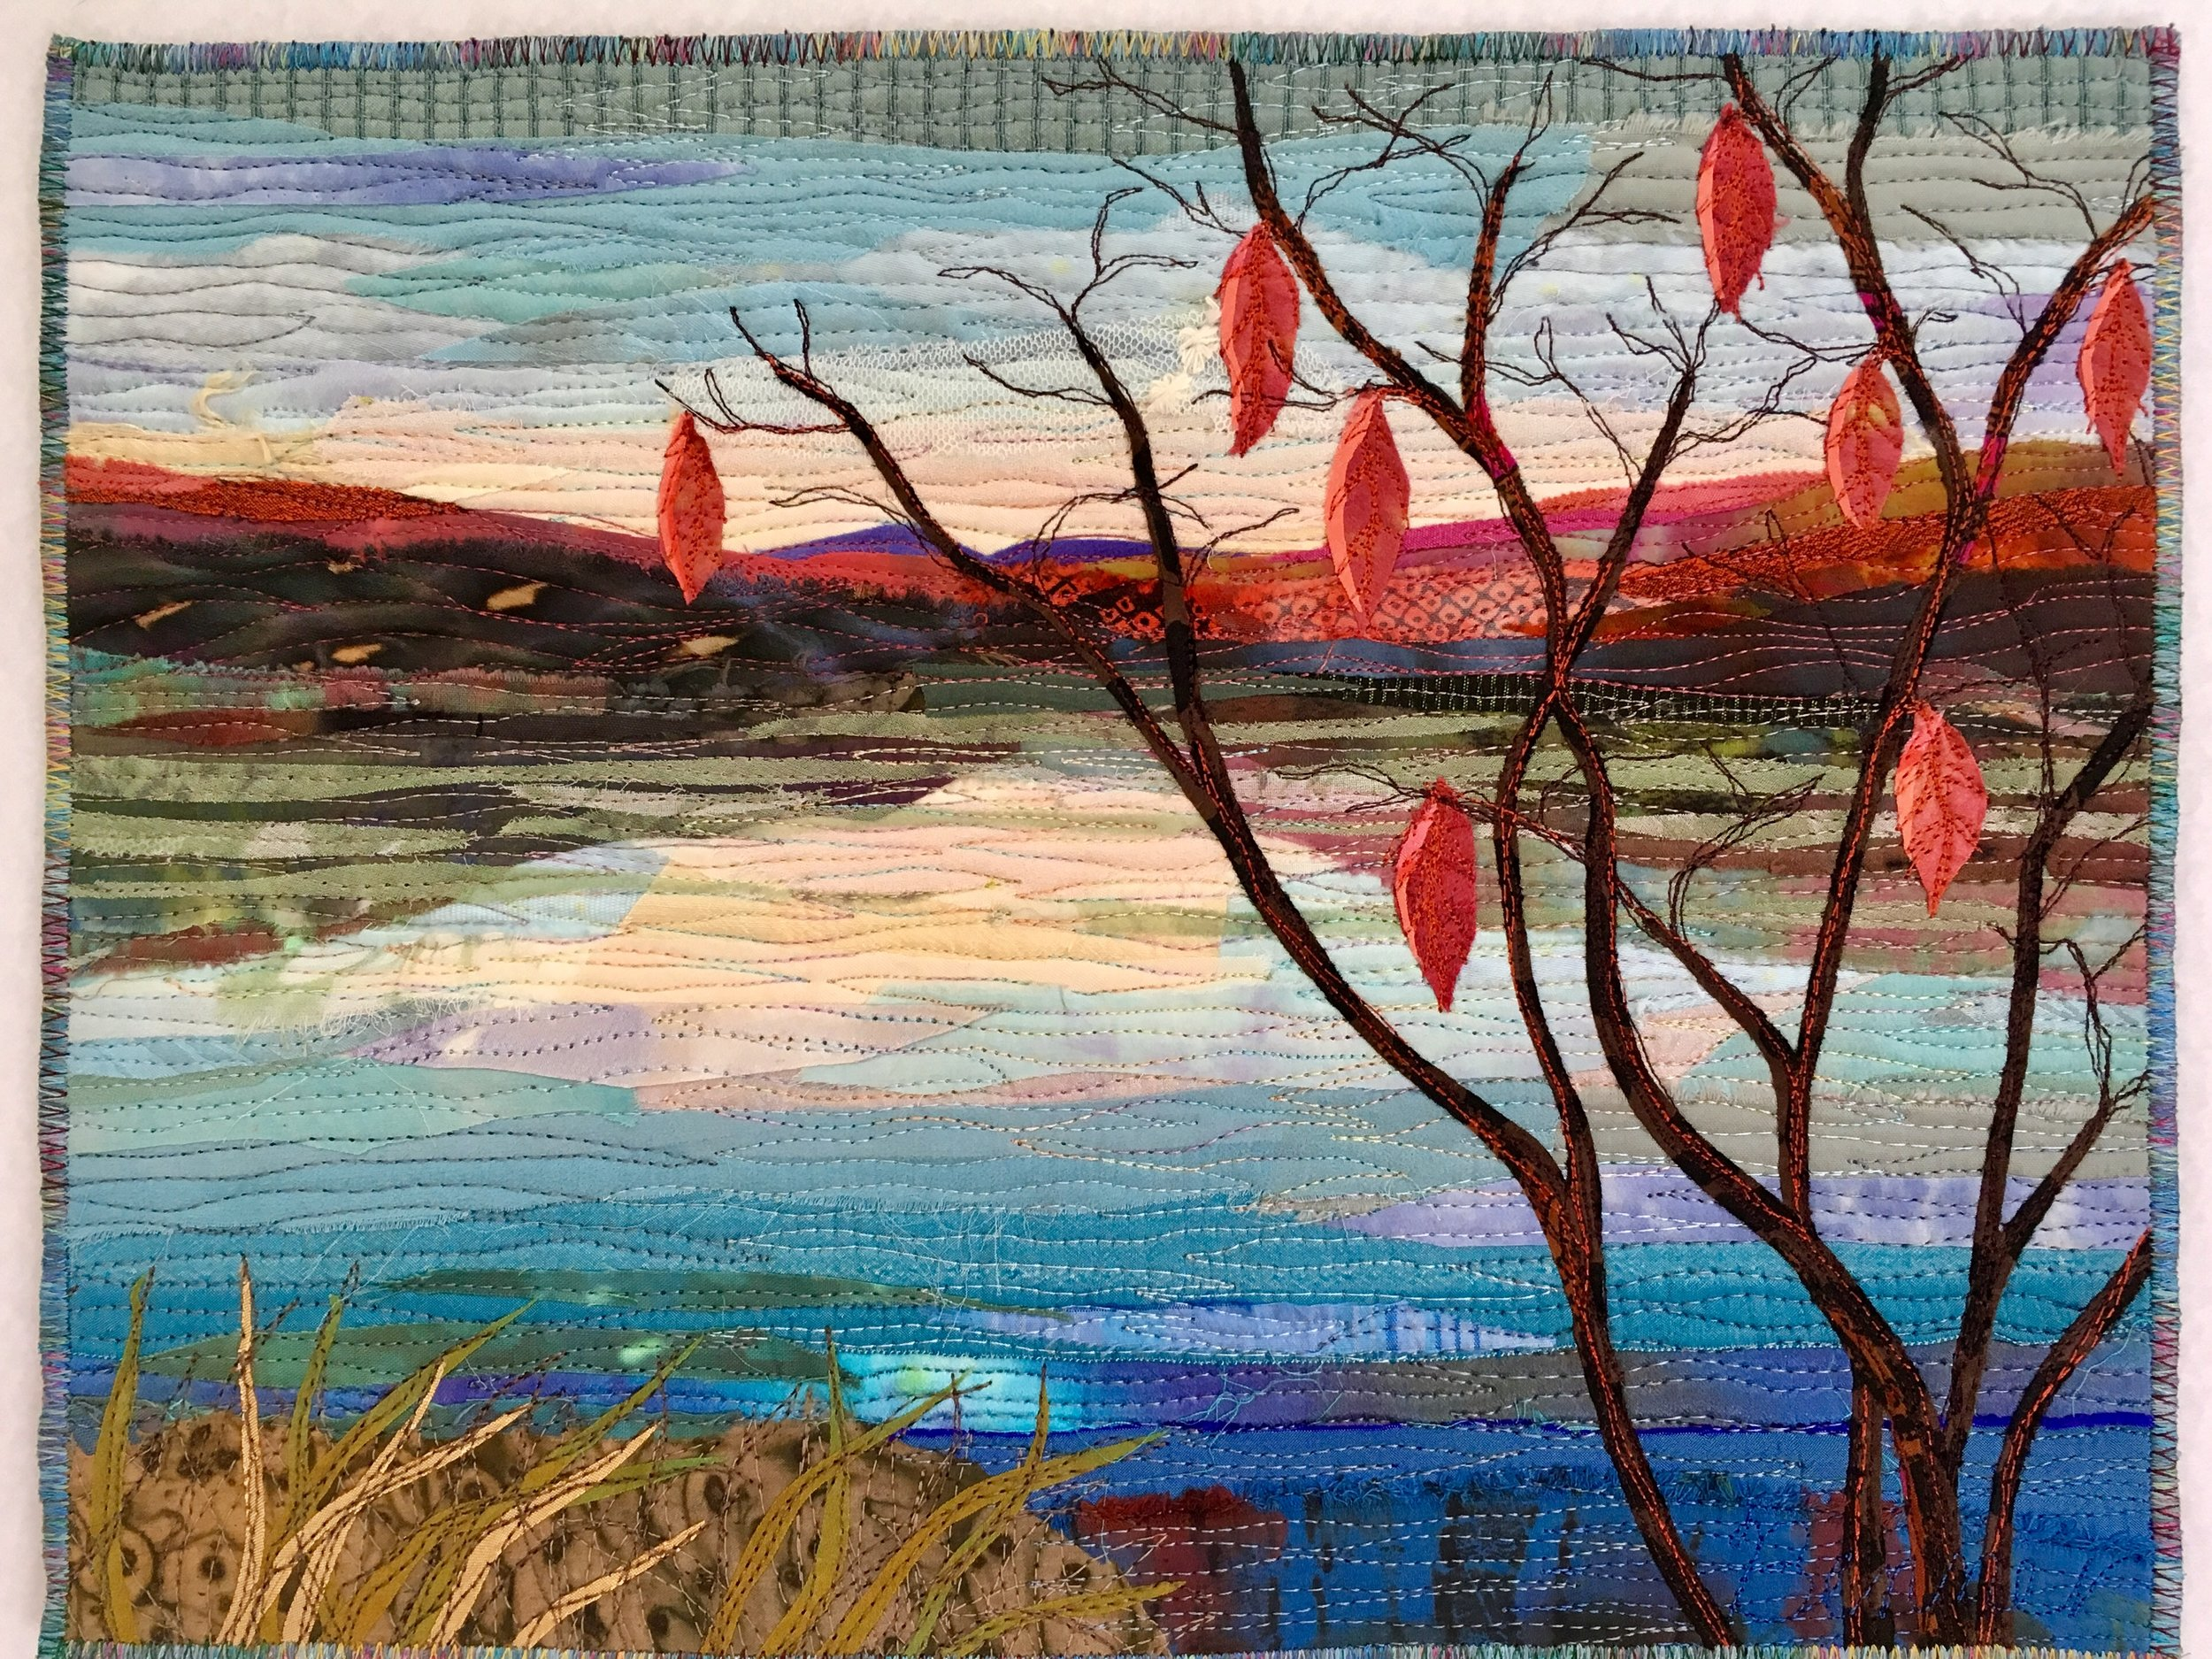 Town Park Pond with Red Leaves - SOLD